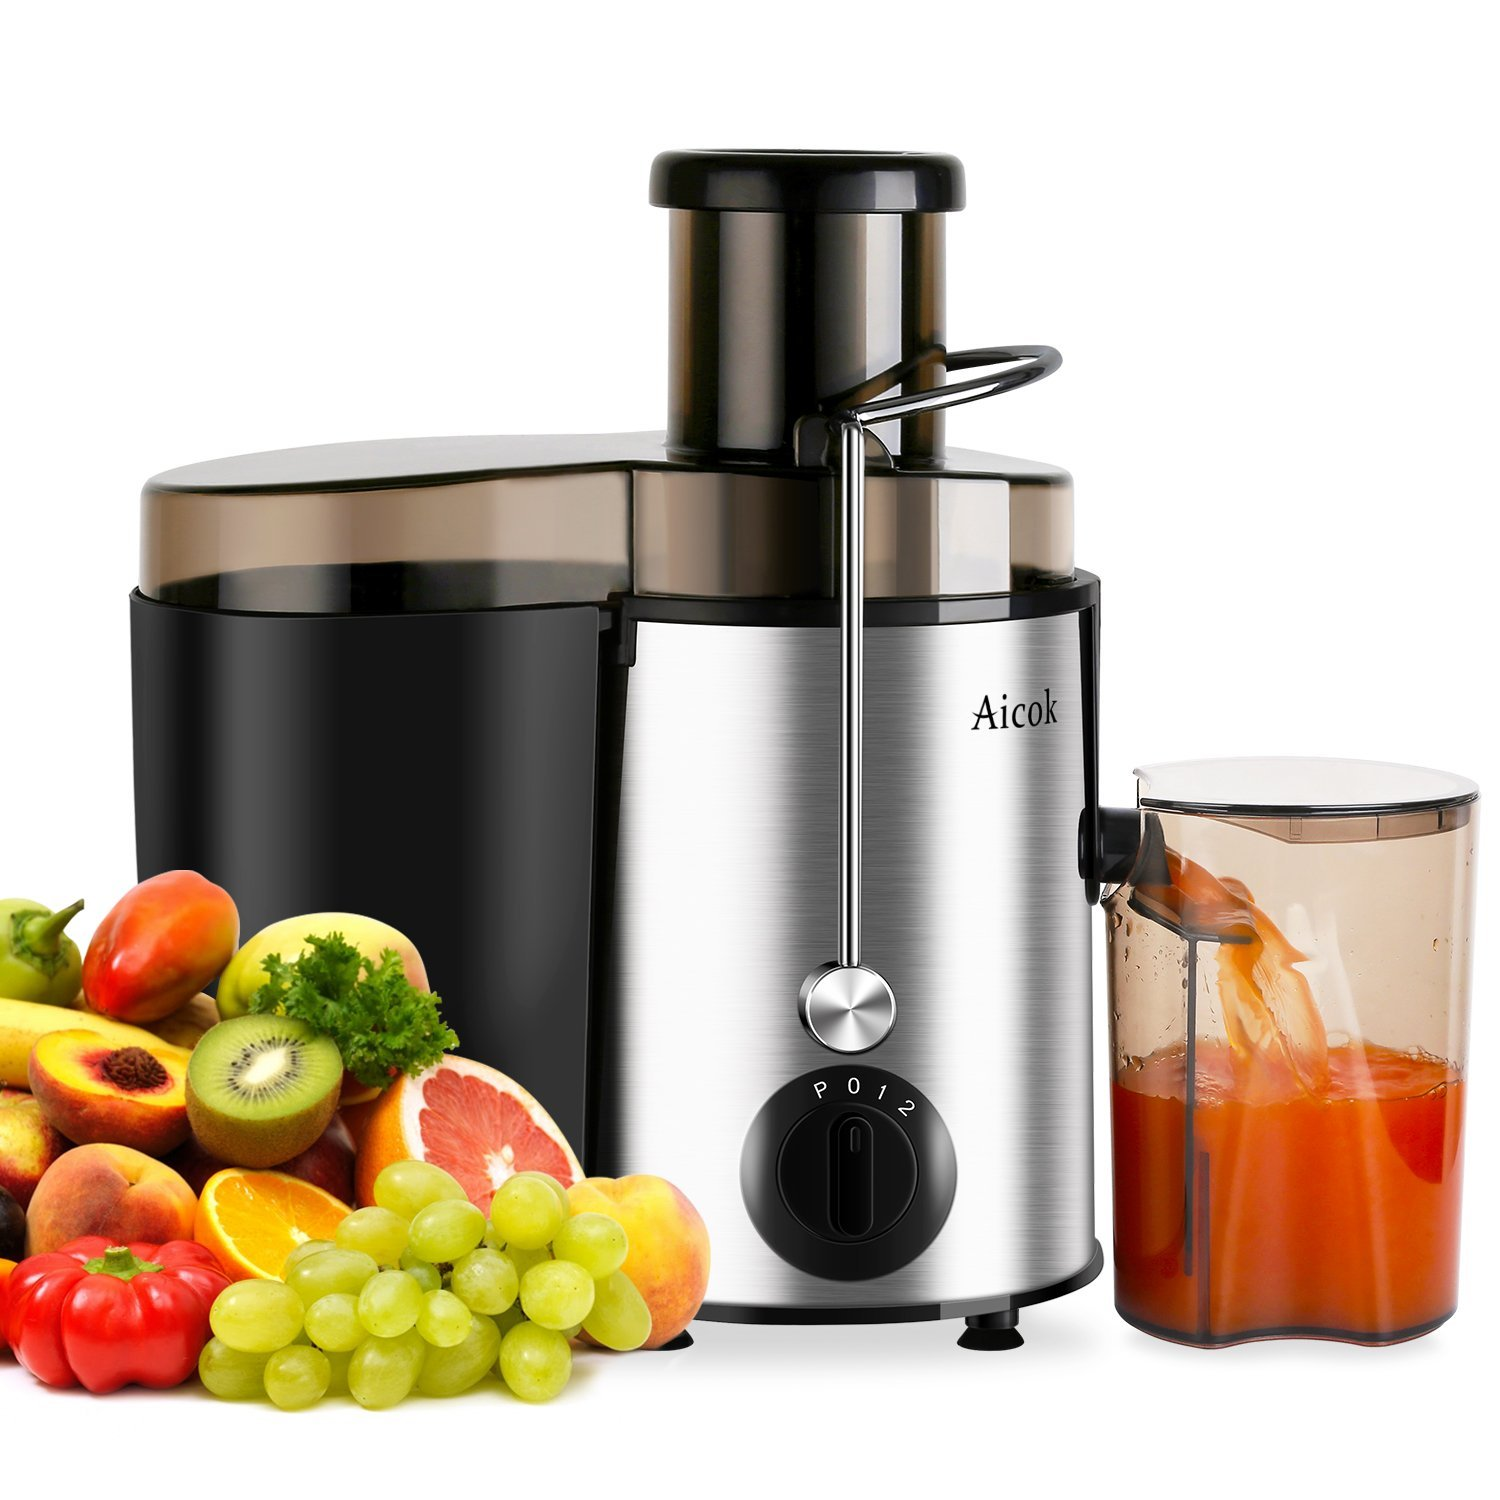 What is a Juicer machine?